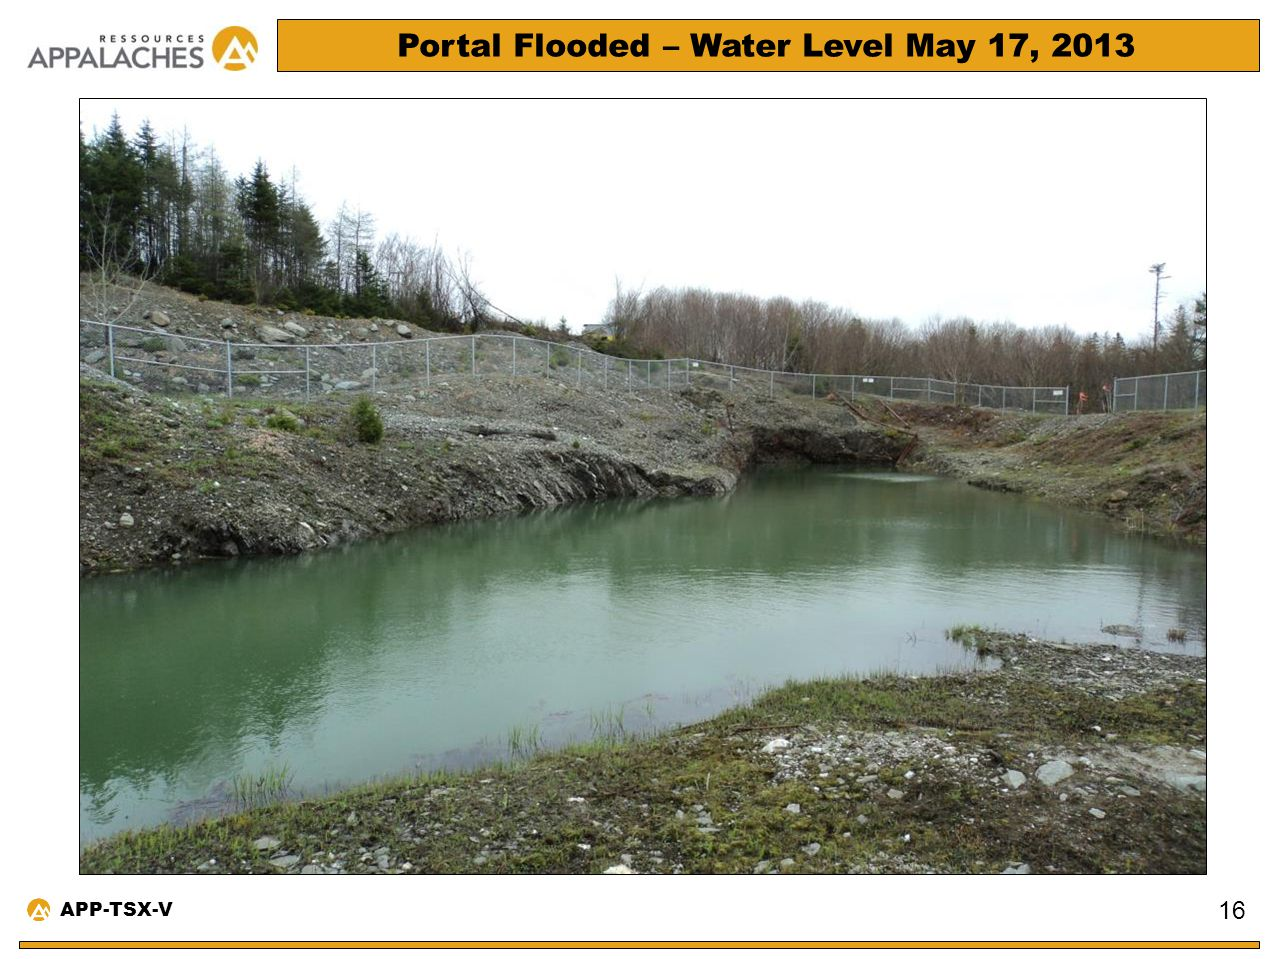 Portal Flooded – Water Level May 17, 2013